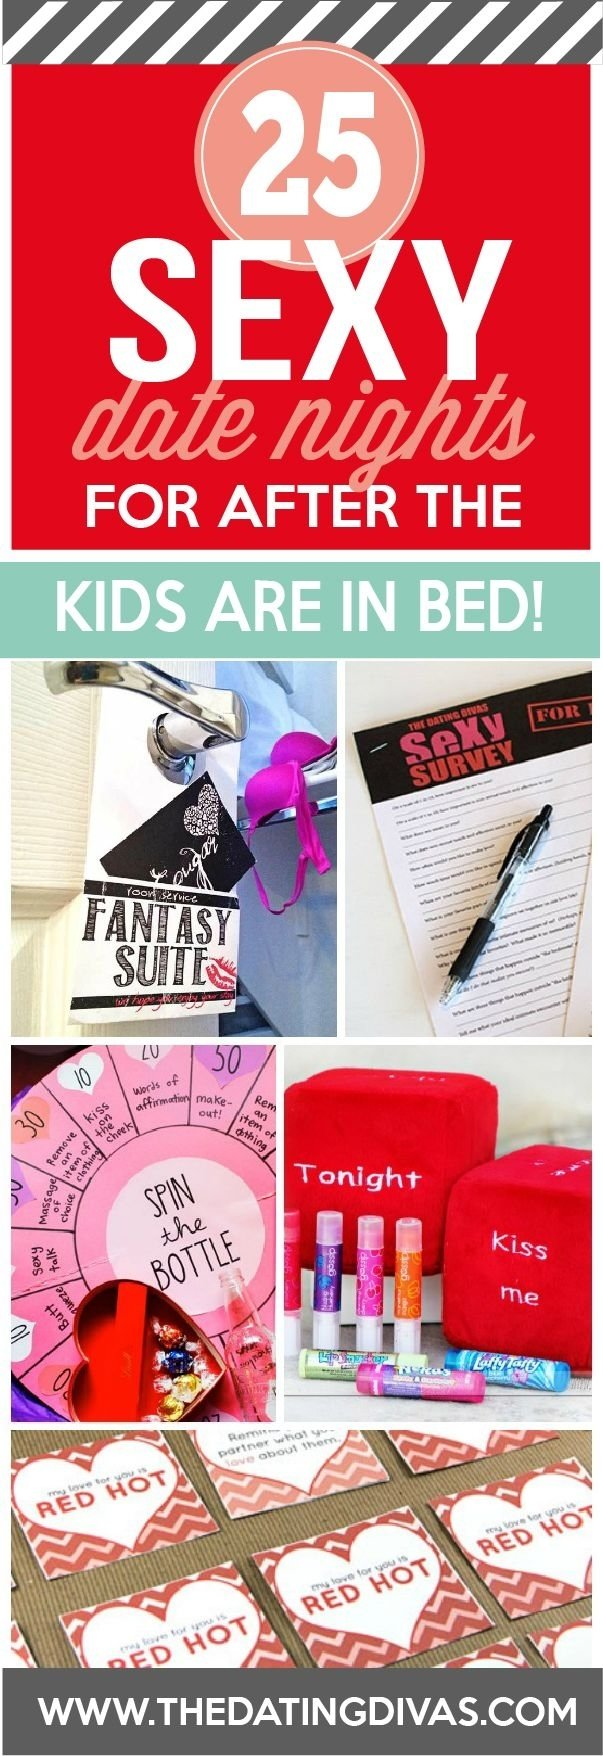 45 at home date night ideas for after the kids are in bed! | bedroom